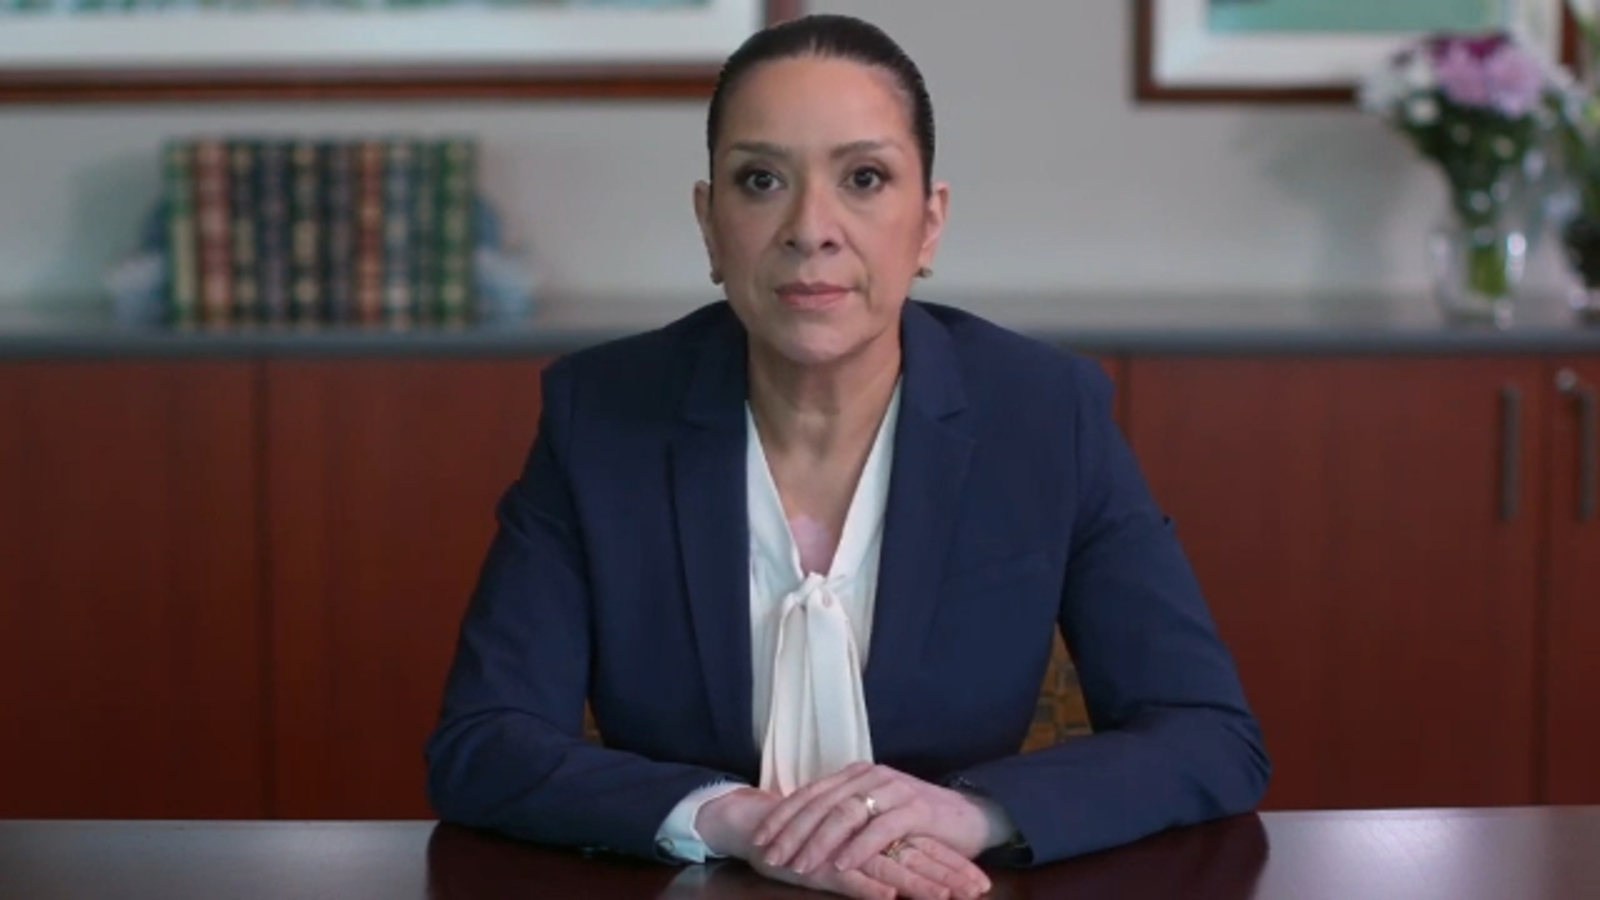 Federal Judge Esther Salas, whose son was killed and husband shot, speaks out